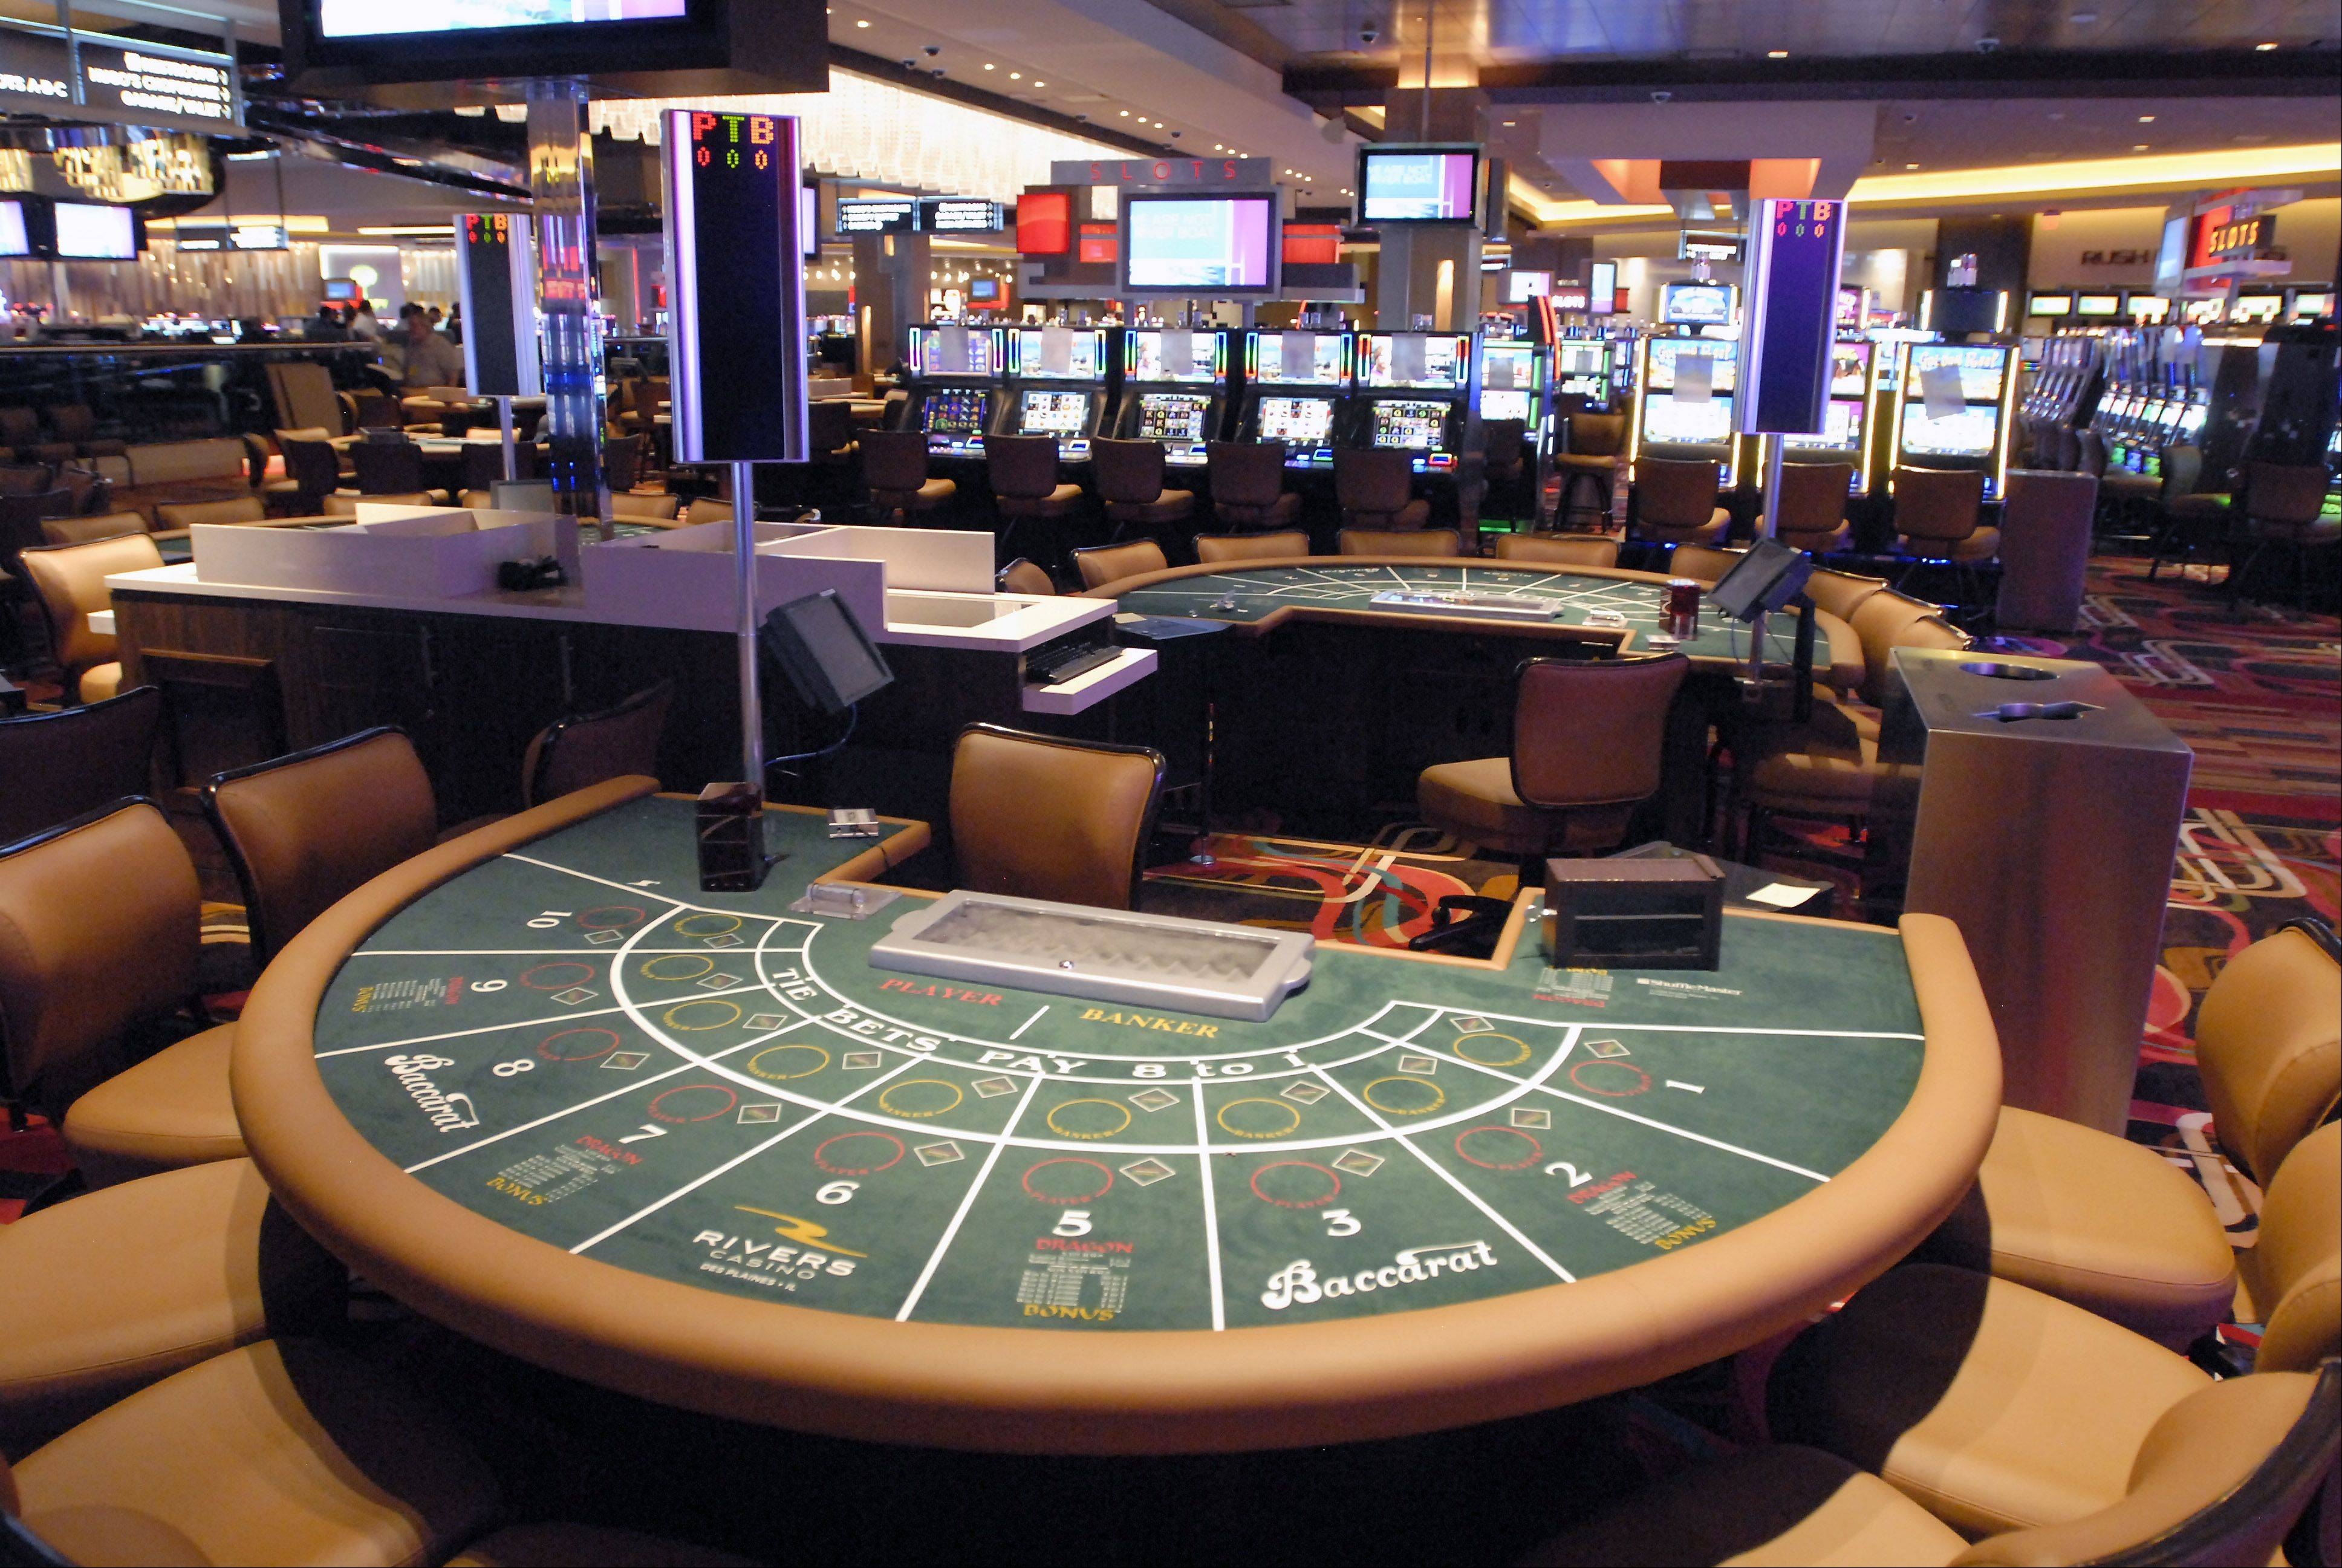 A Baccarat table is one of 48 table game stations at the Rivers Casino in Des Plaines.